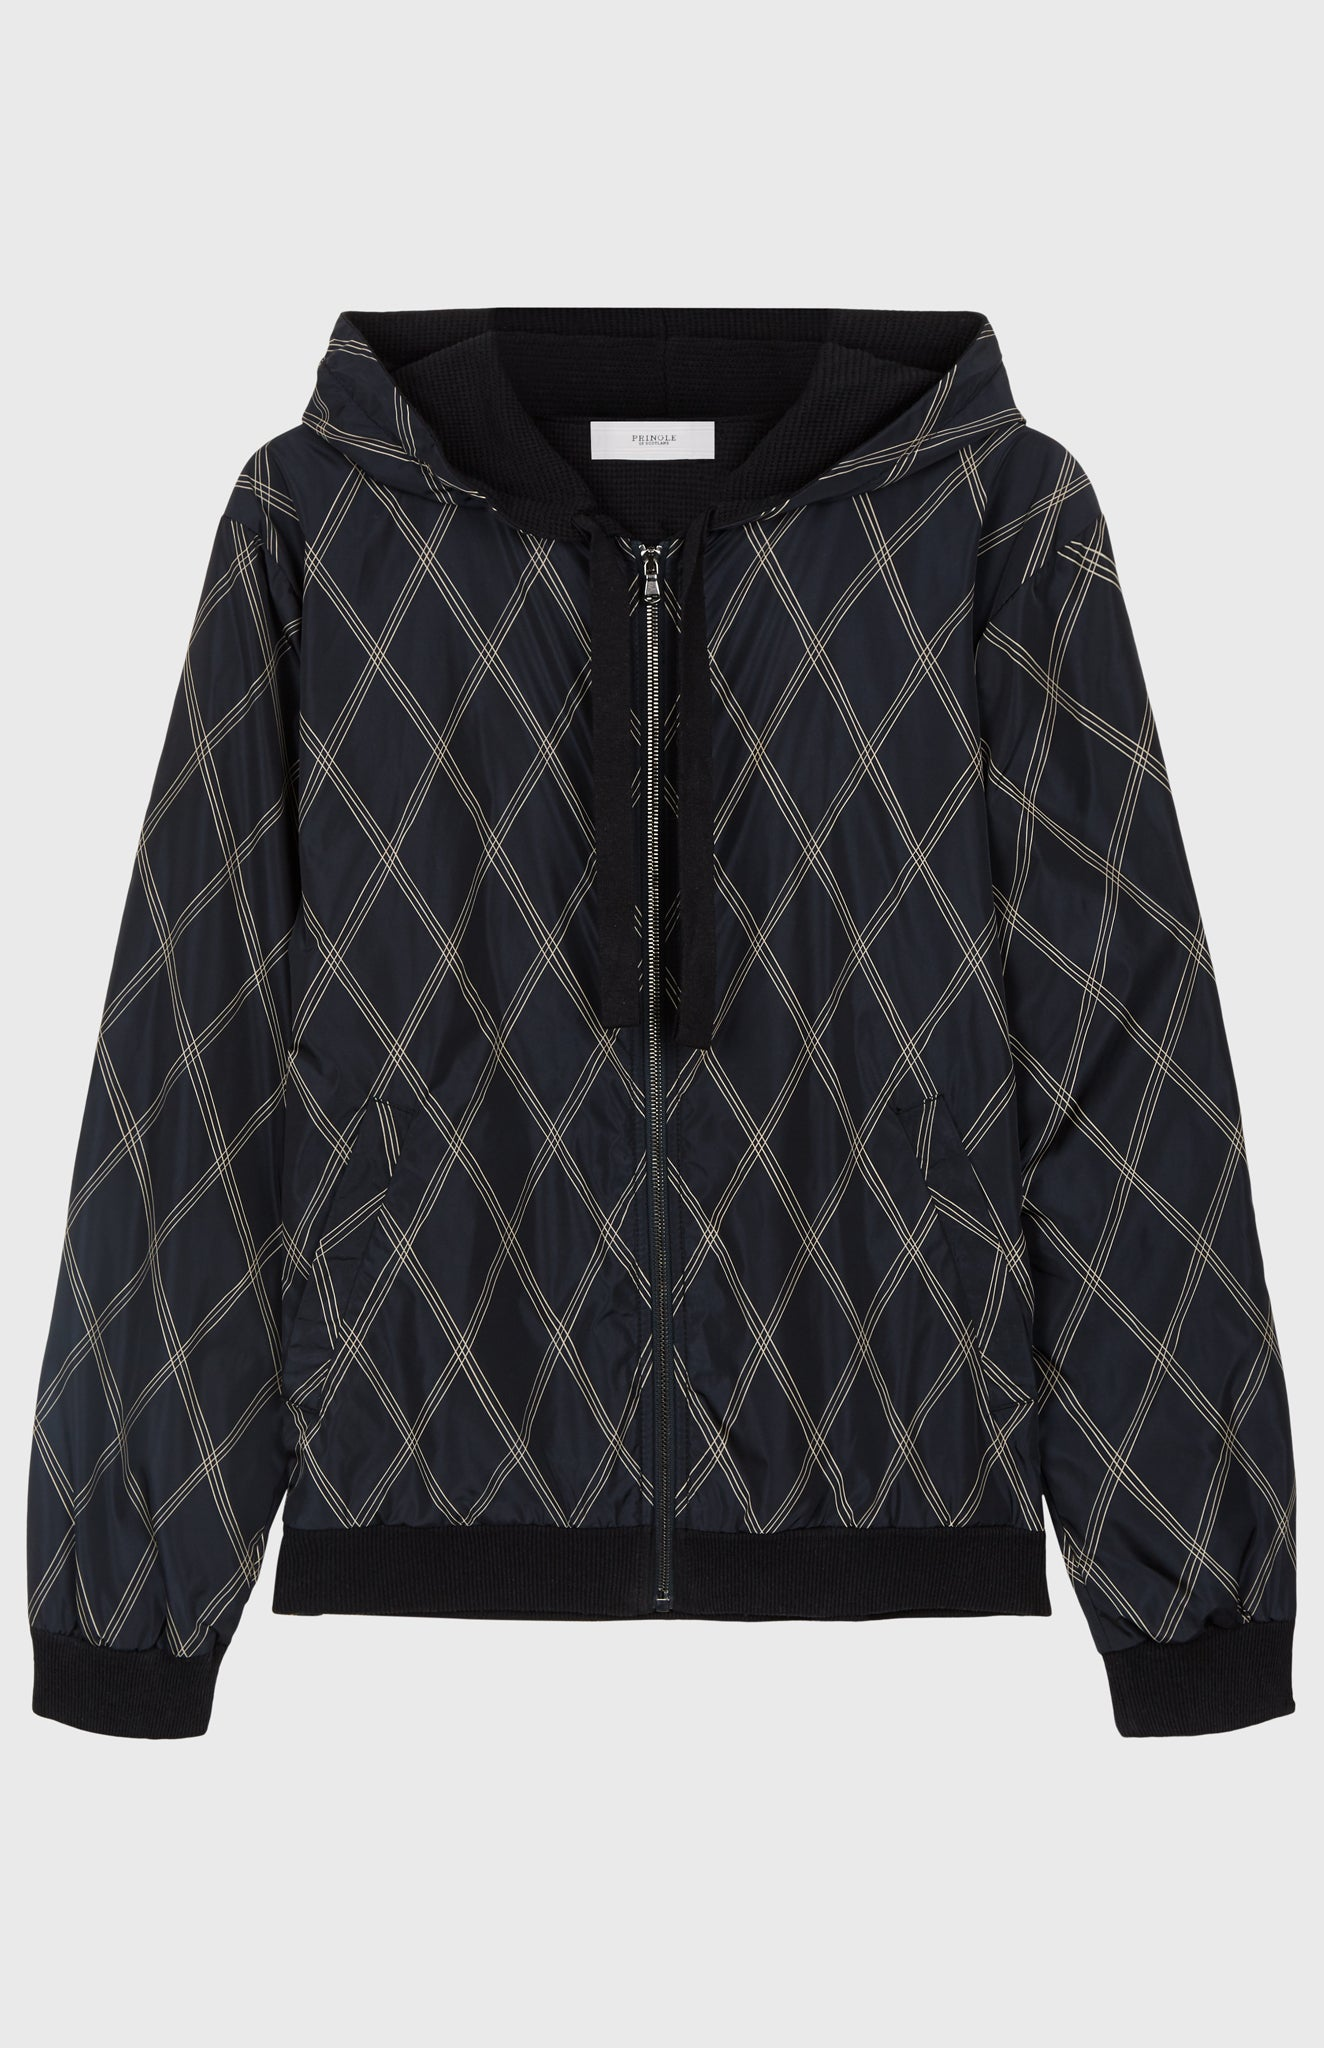 Linear Argyle Hoodie In Ink/Black